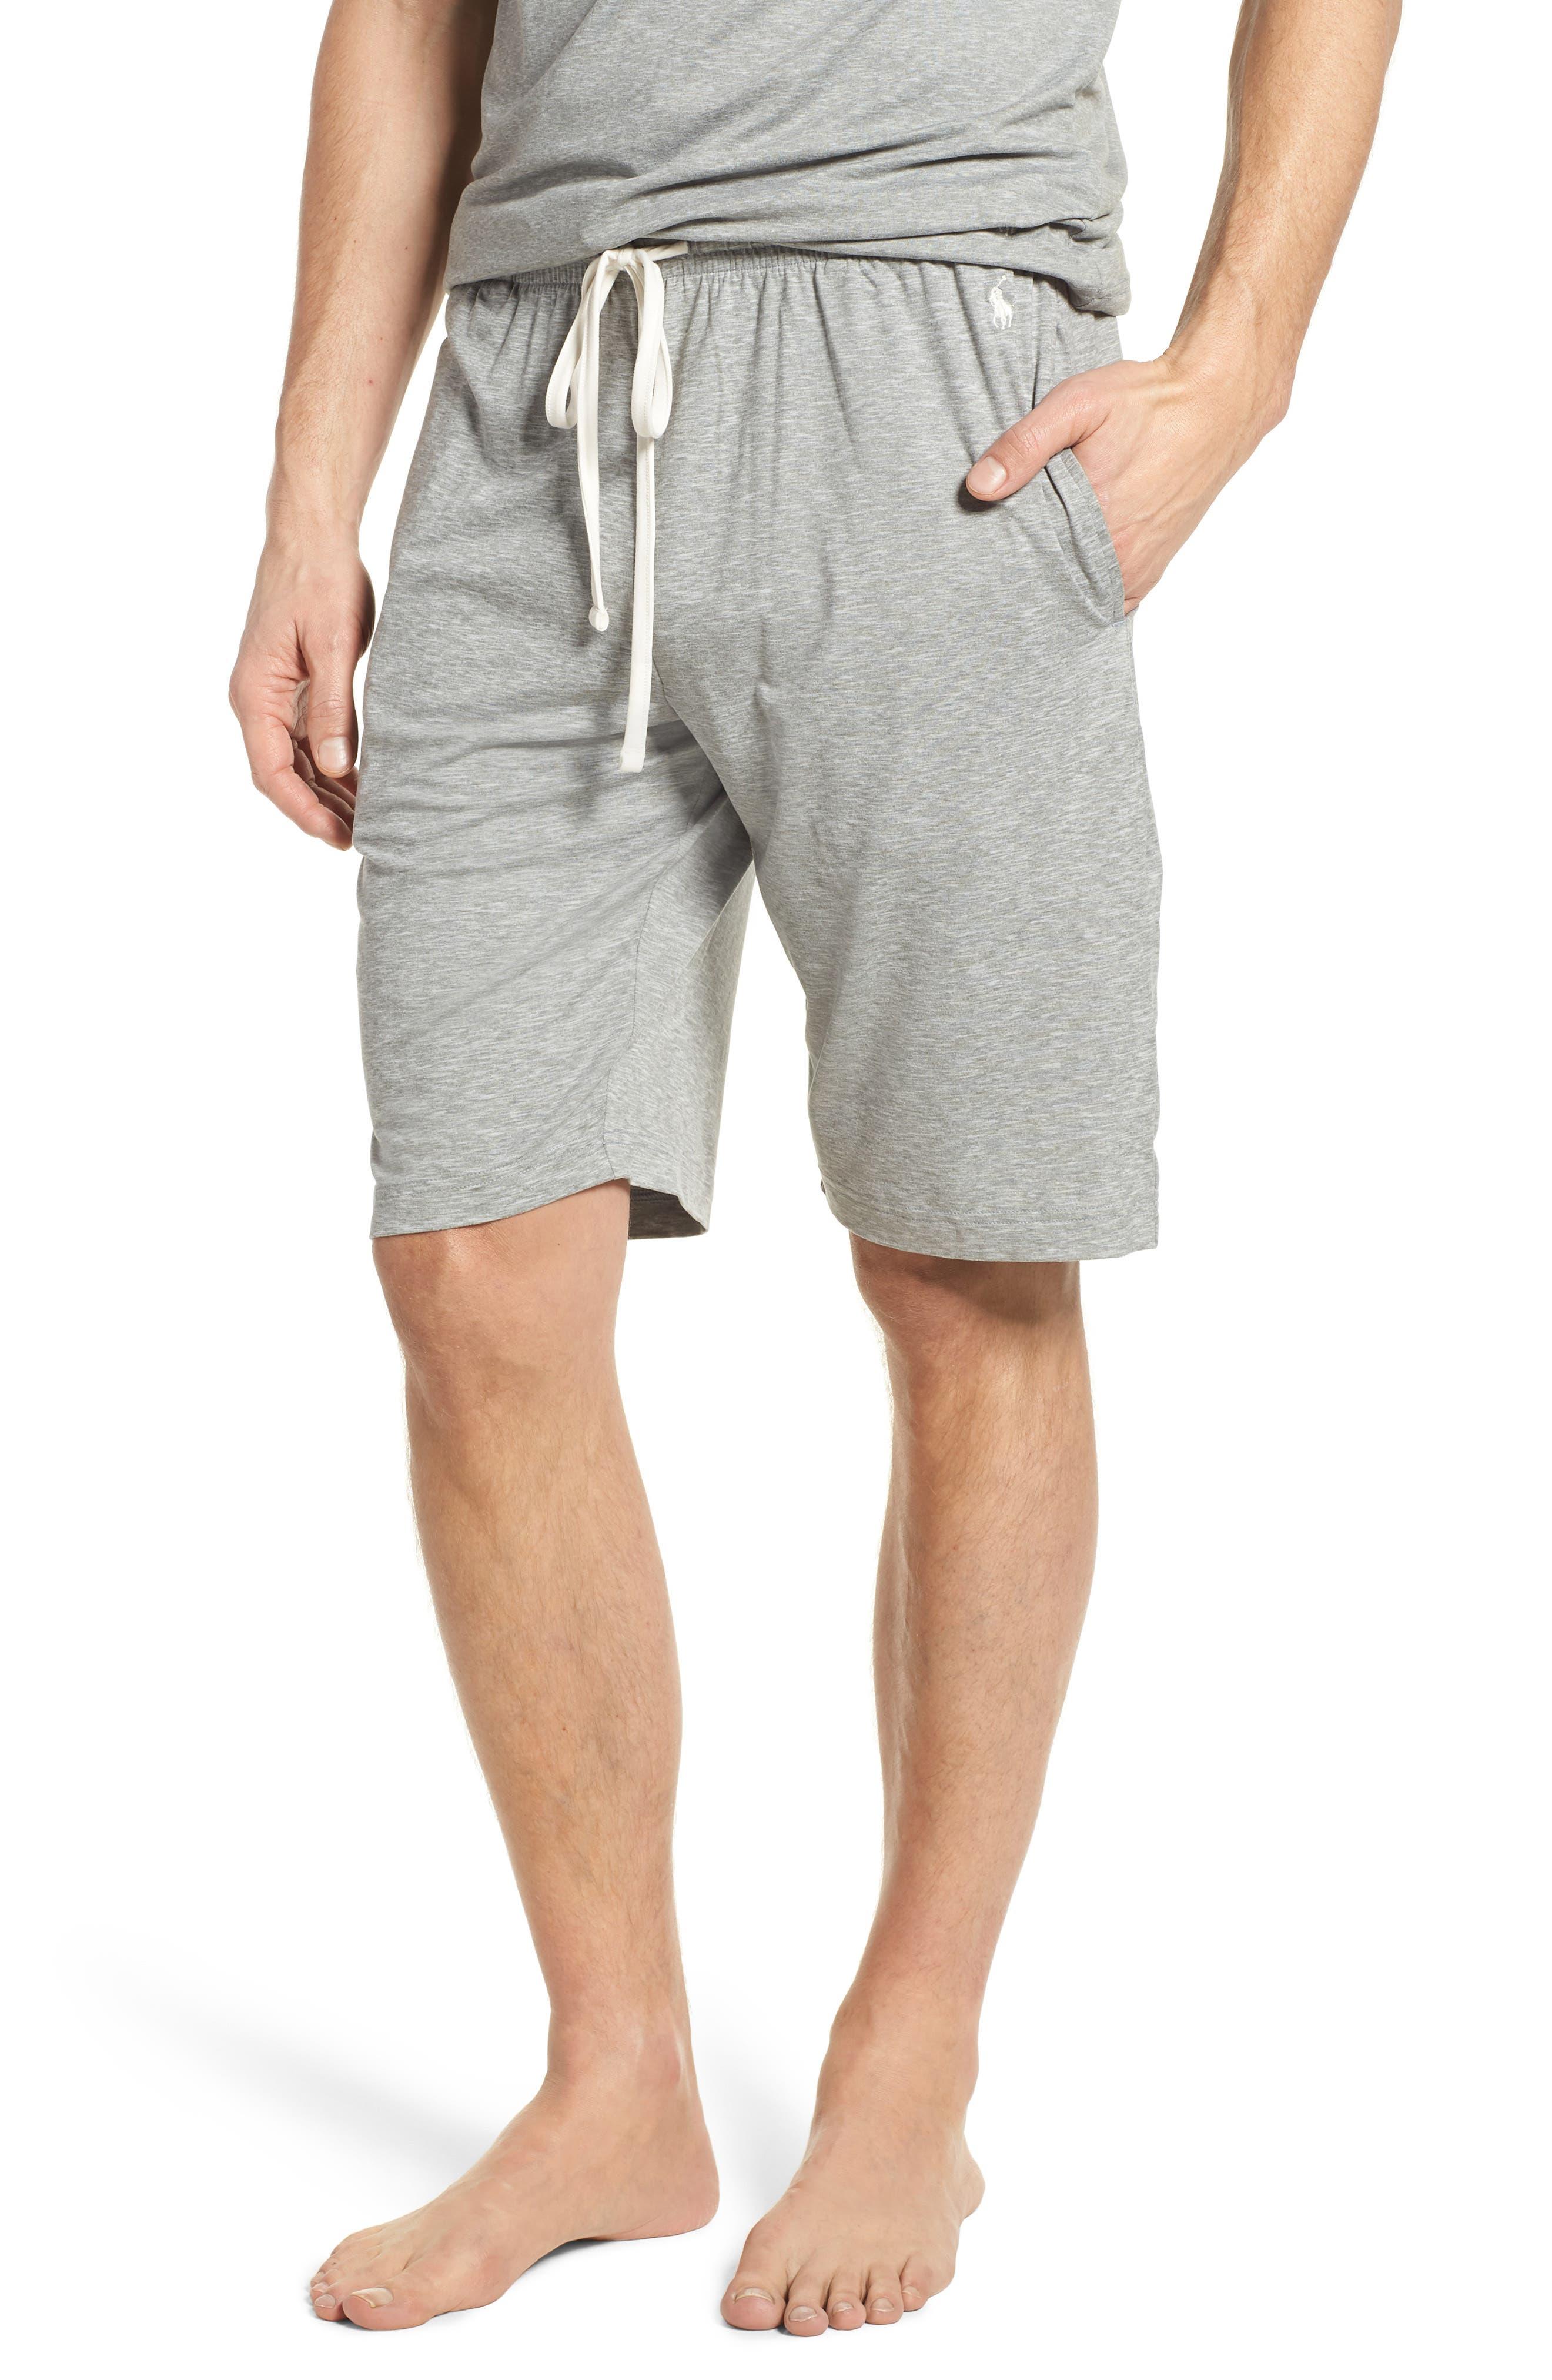 Therma Lounge Shorts,                         Main,                         color, Andover Heather/ Nevis